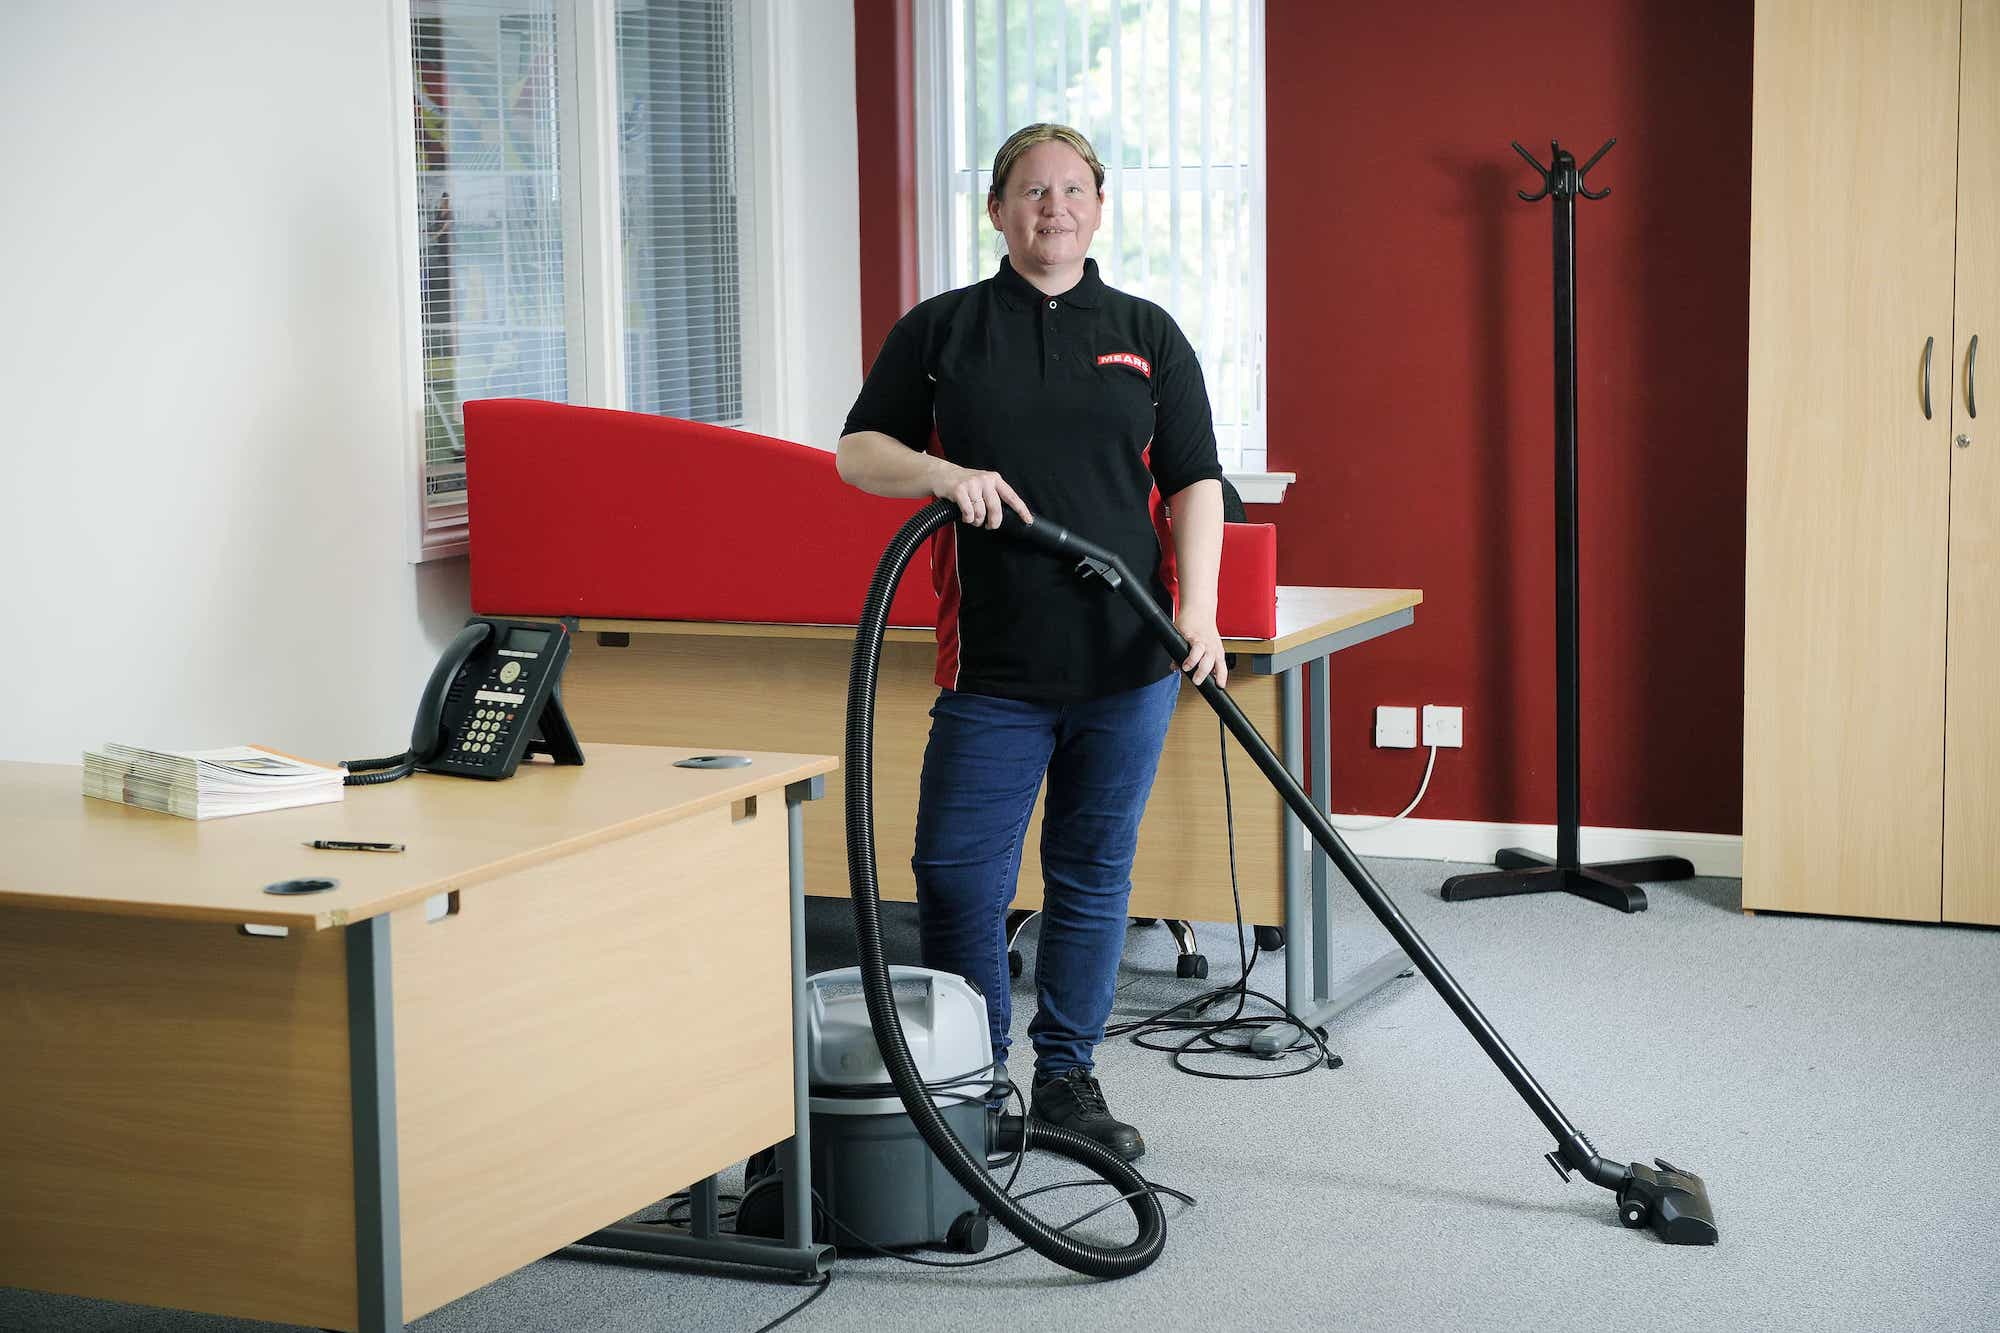 Mears colleague from Facilities Managing, cleaning a school in Scotland